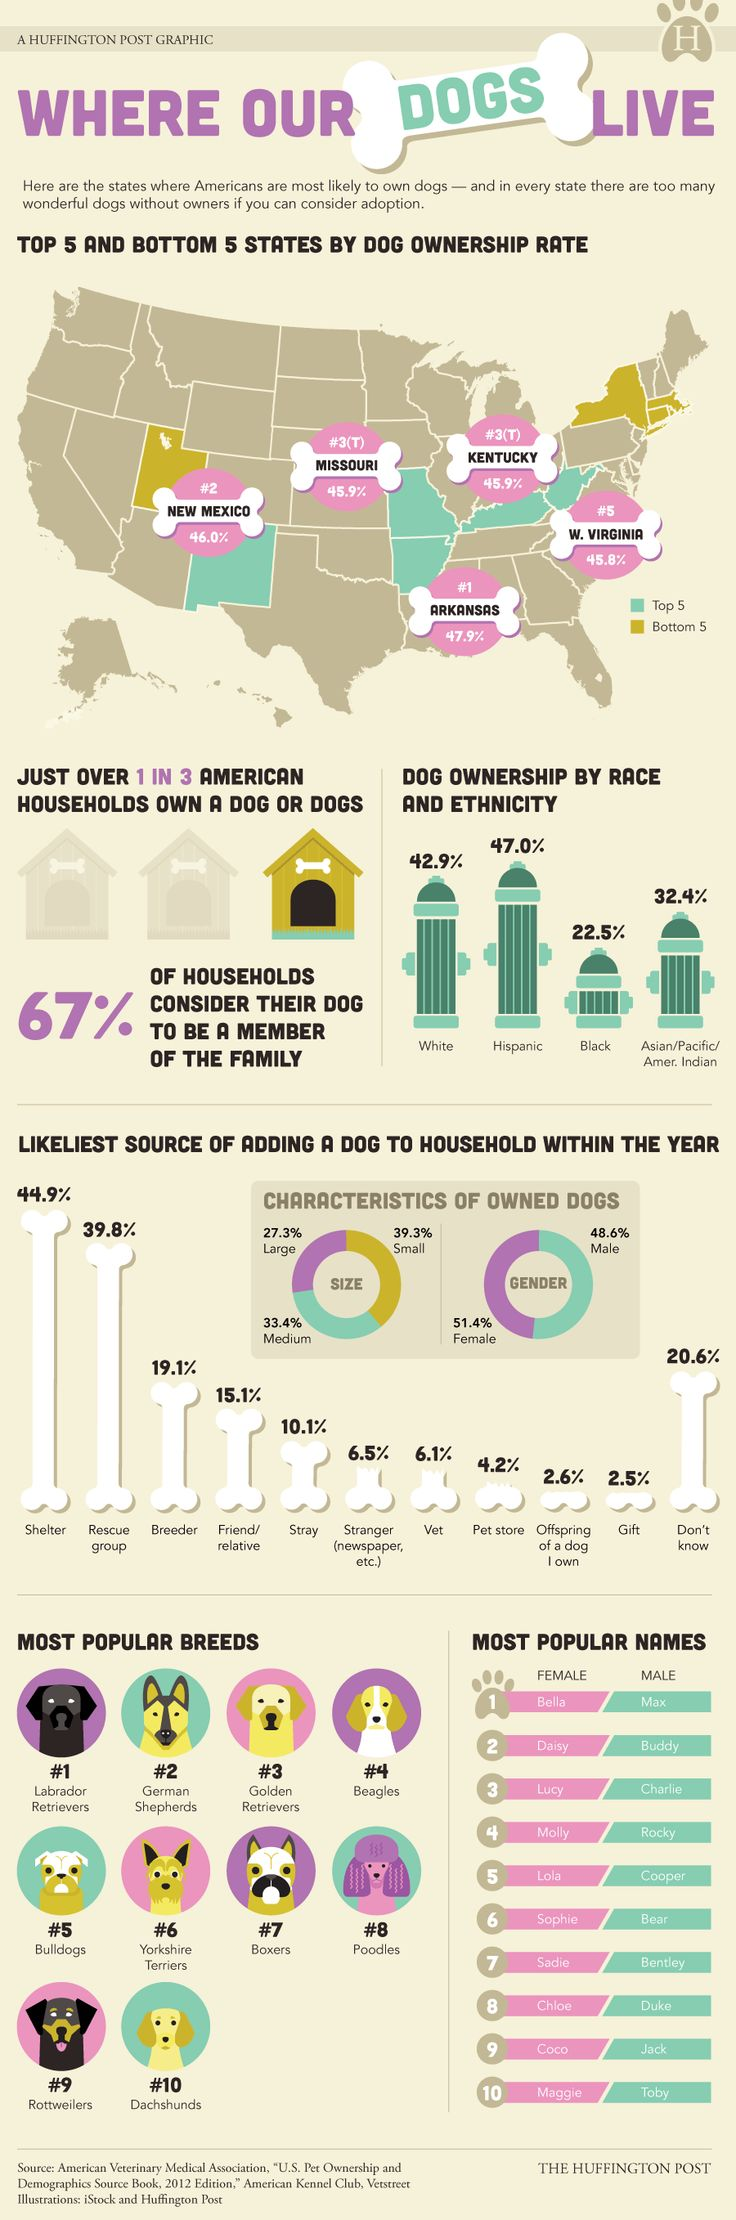 Top Dog Ownership States